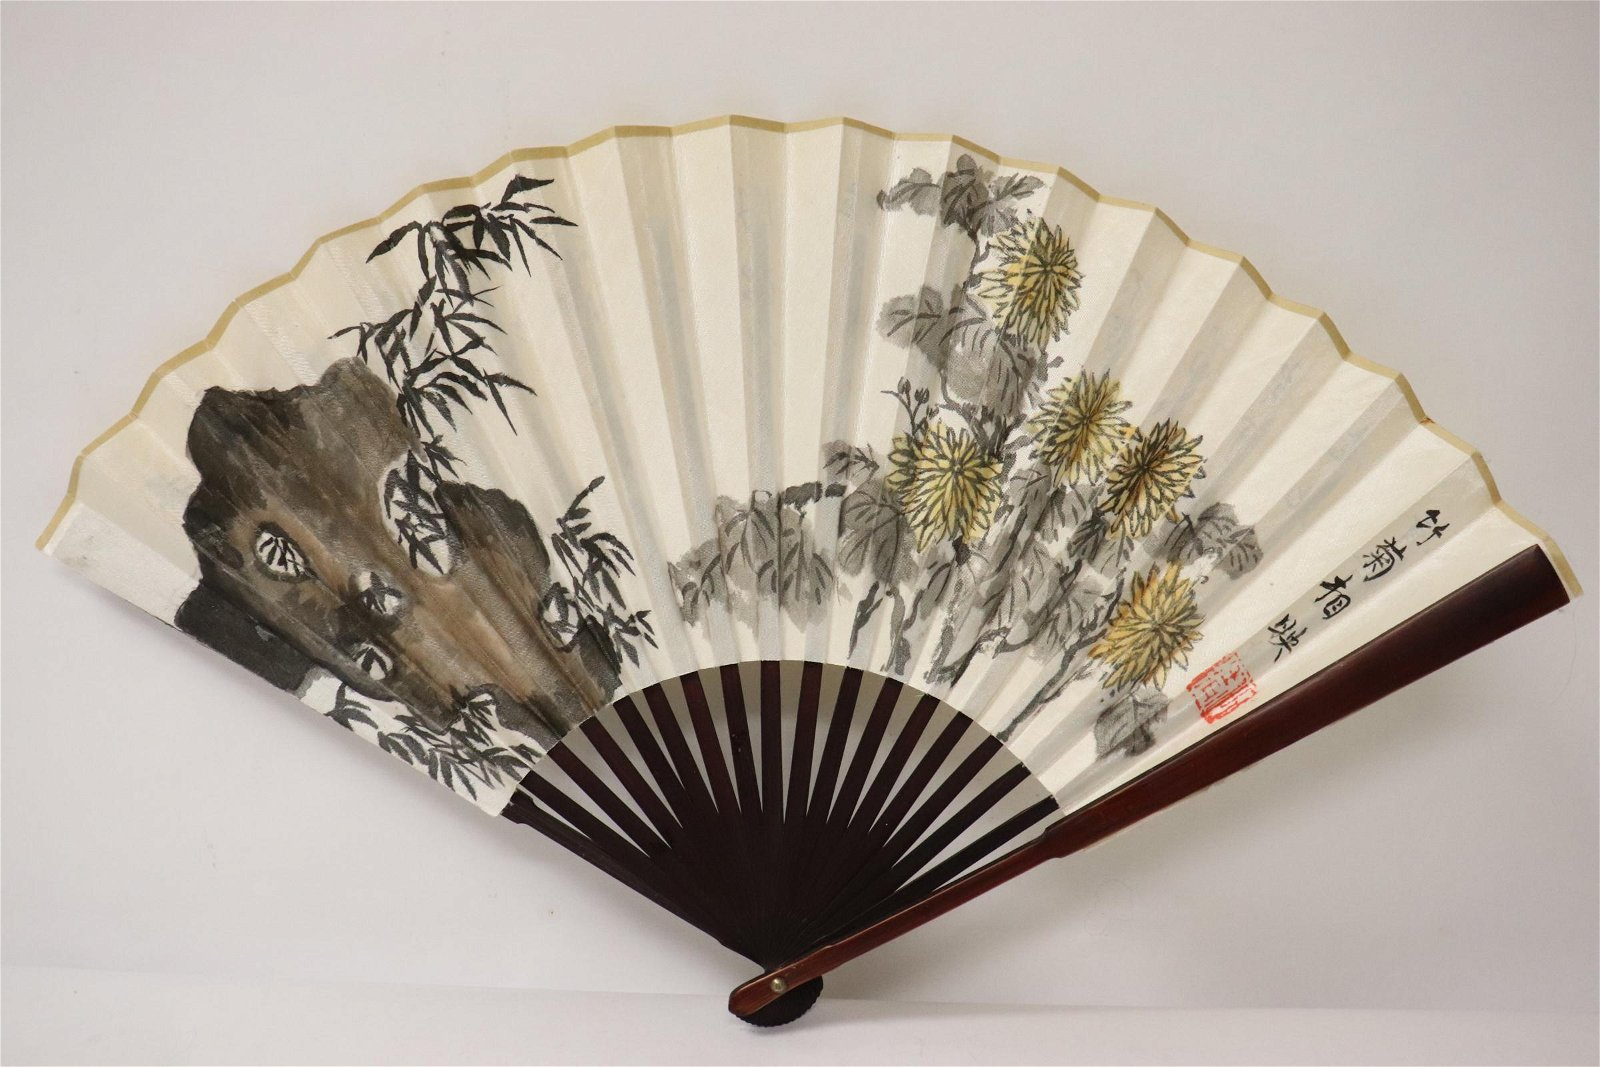 Chinese silk fan with w/c painting and calligraphy